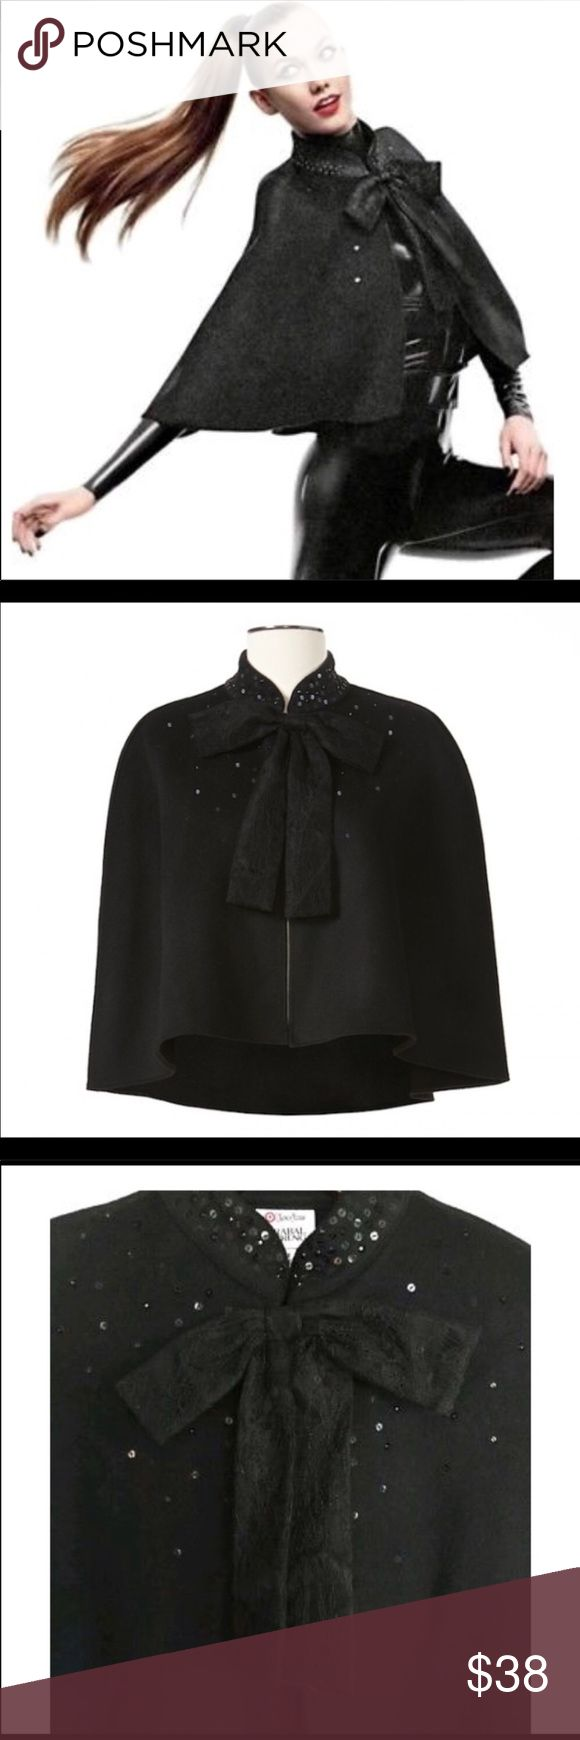 👗 Sale!!!!!!    Neiman Marcus Blake Cape This cape is high end fashion and can be dressed up or down! It can be paired with jeans or a fabulous dress! The options are endless! One Size Neiman Marcus Jackets & Coats Capes